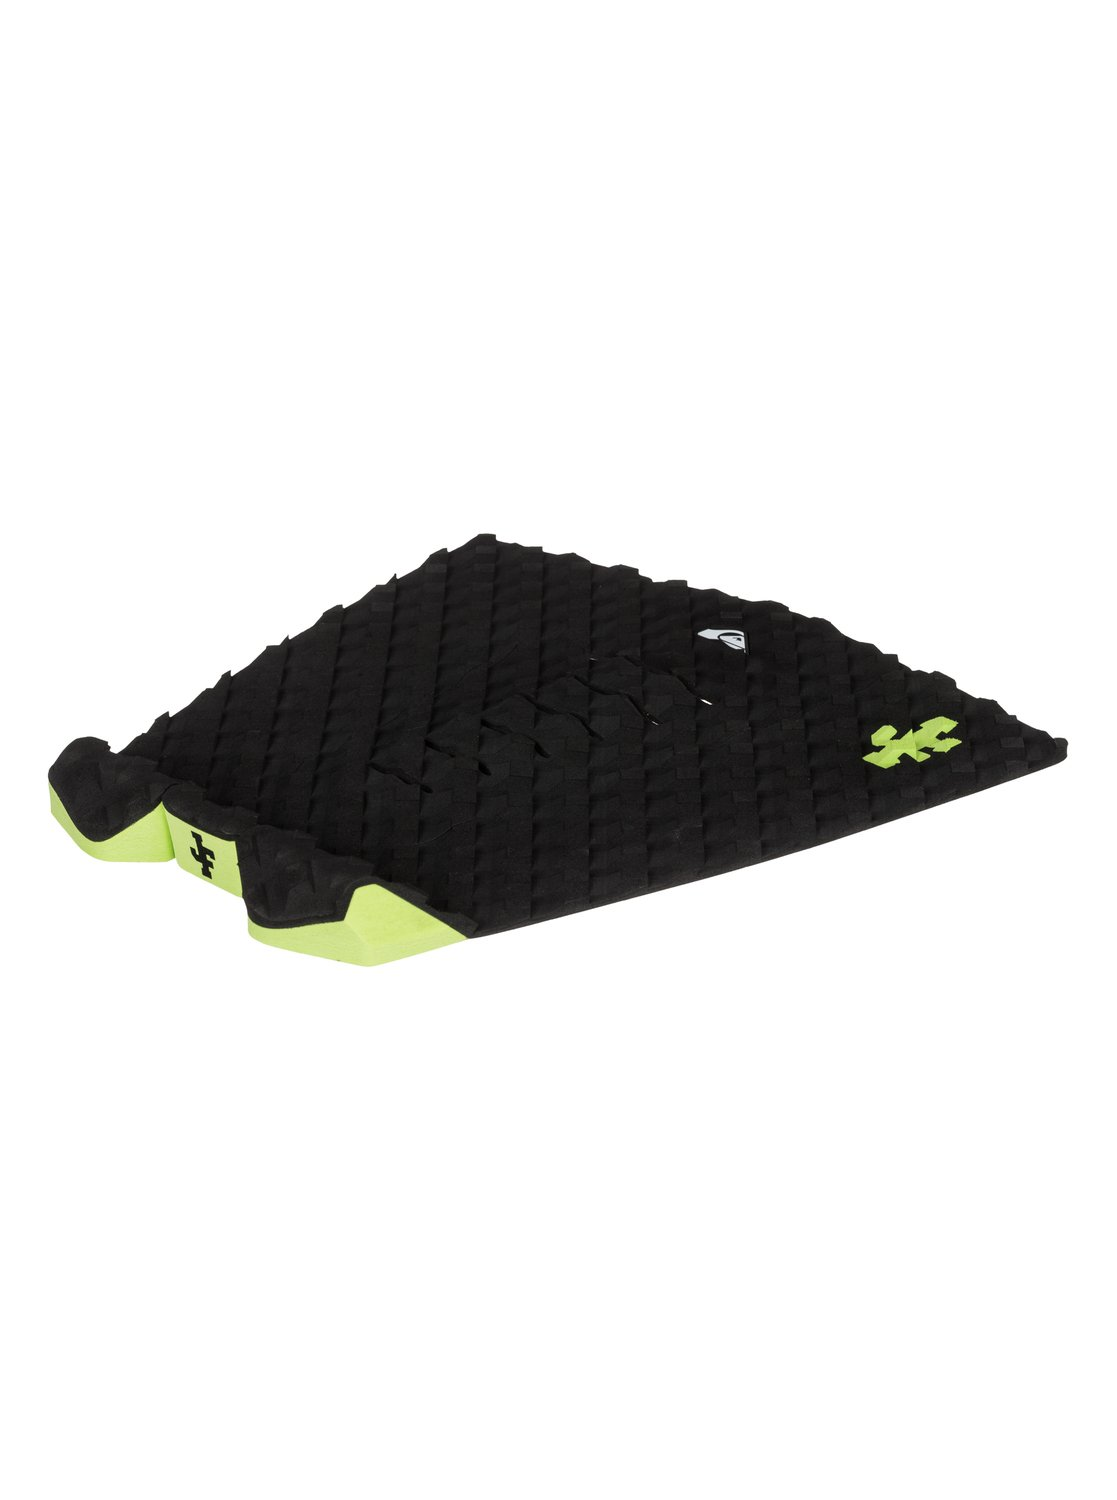 Jf1 - Surf Traction Pad